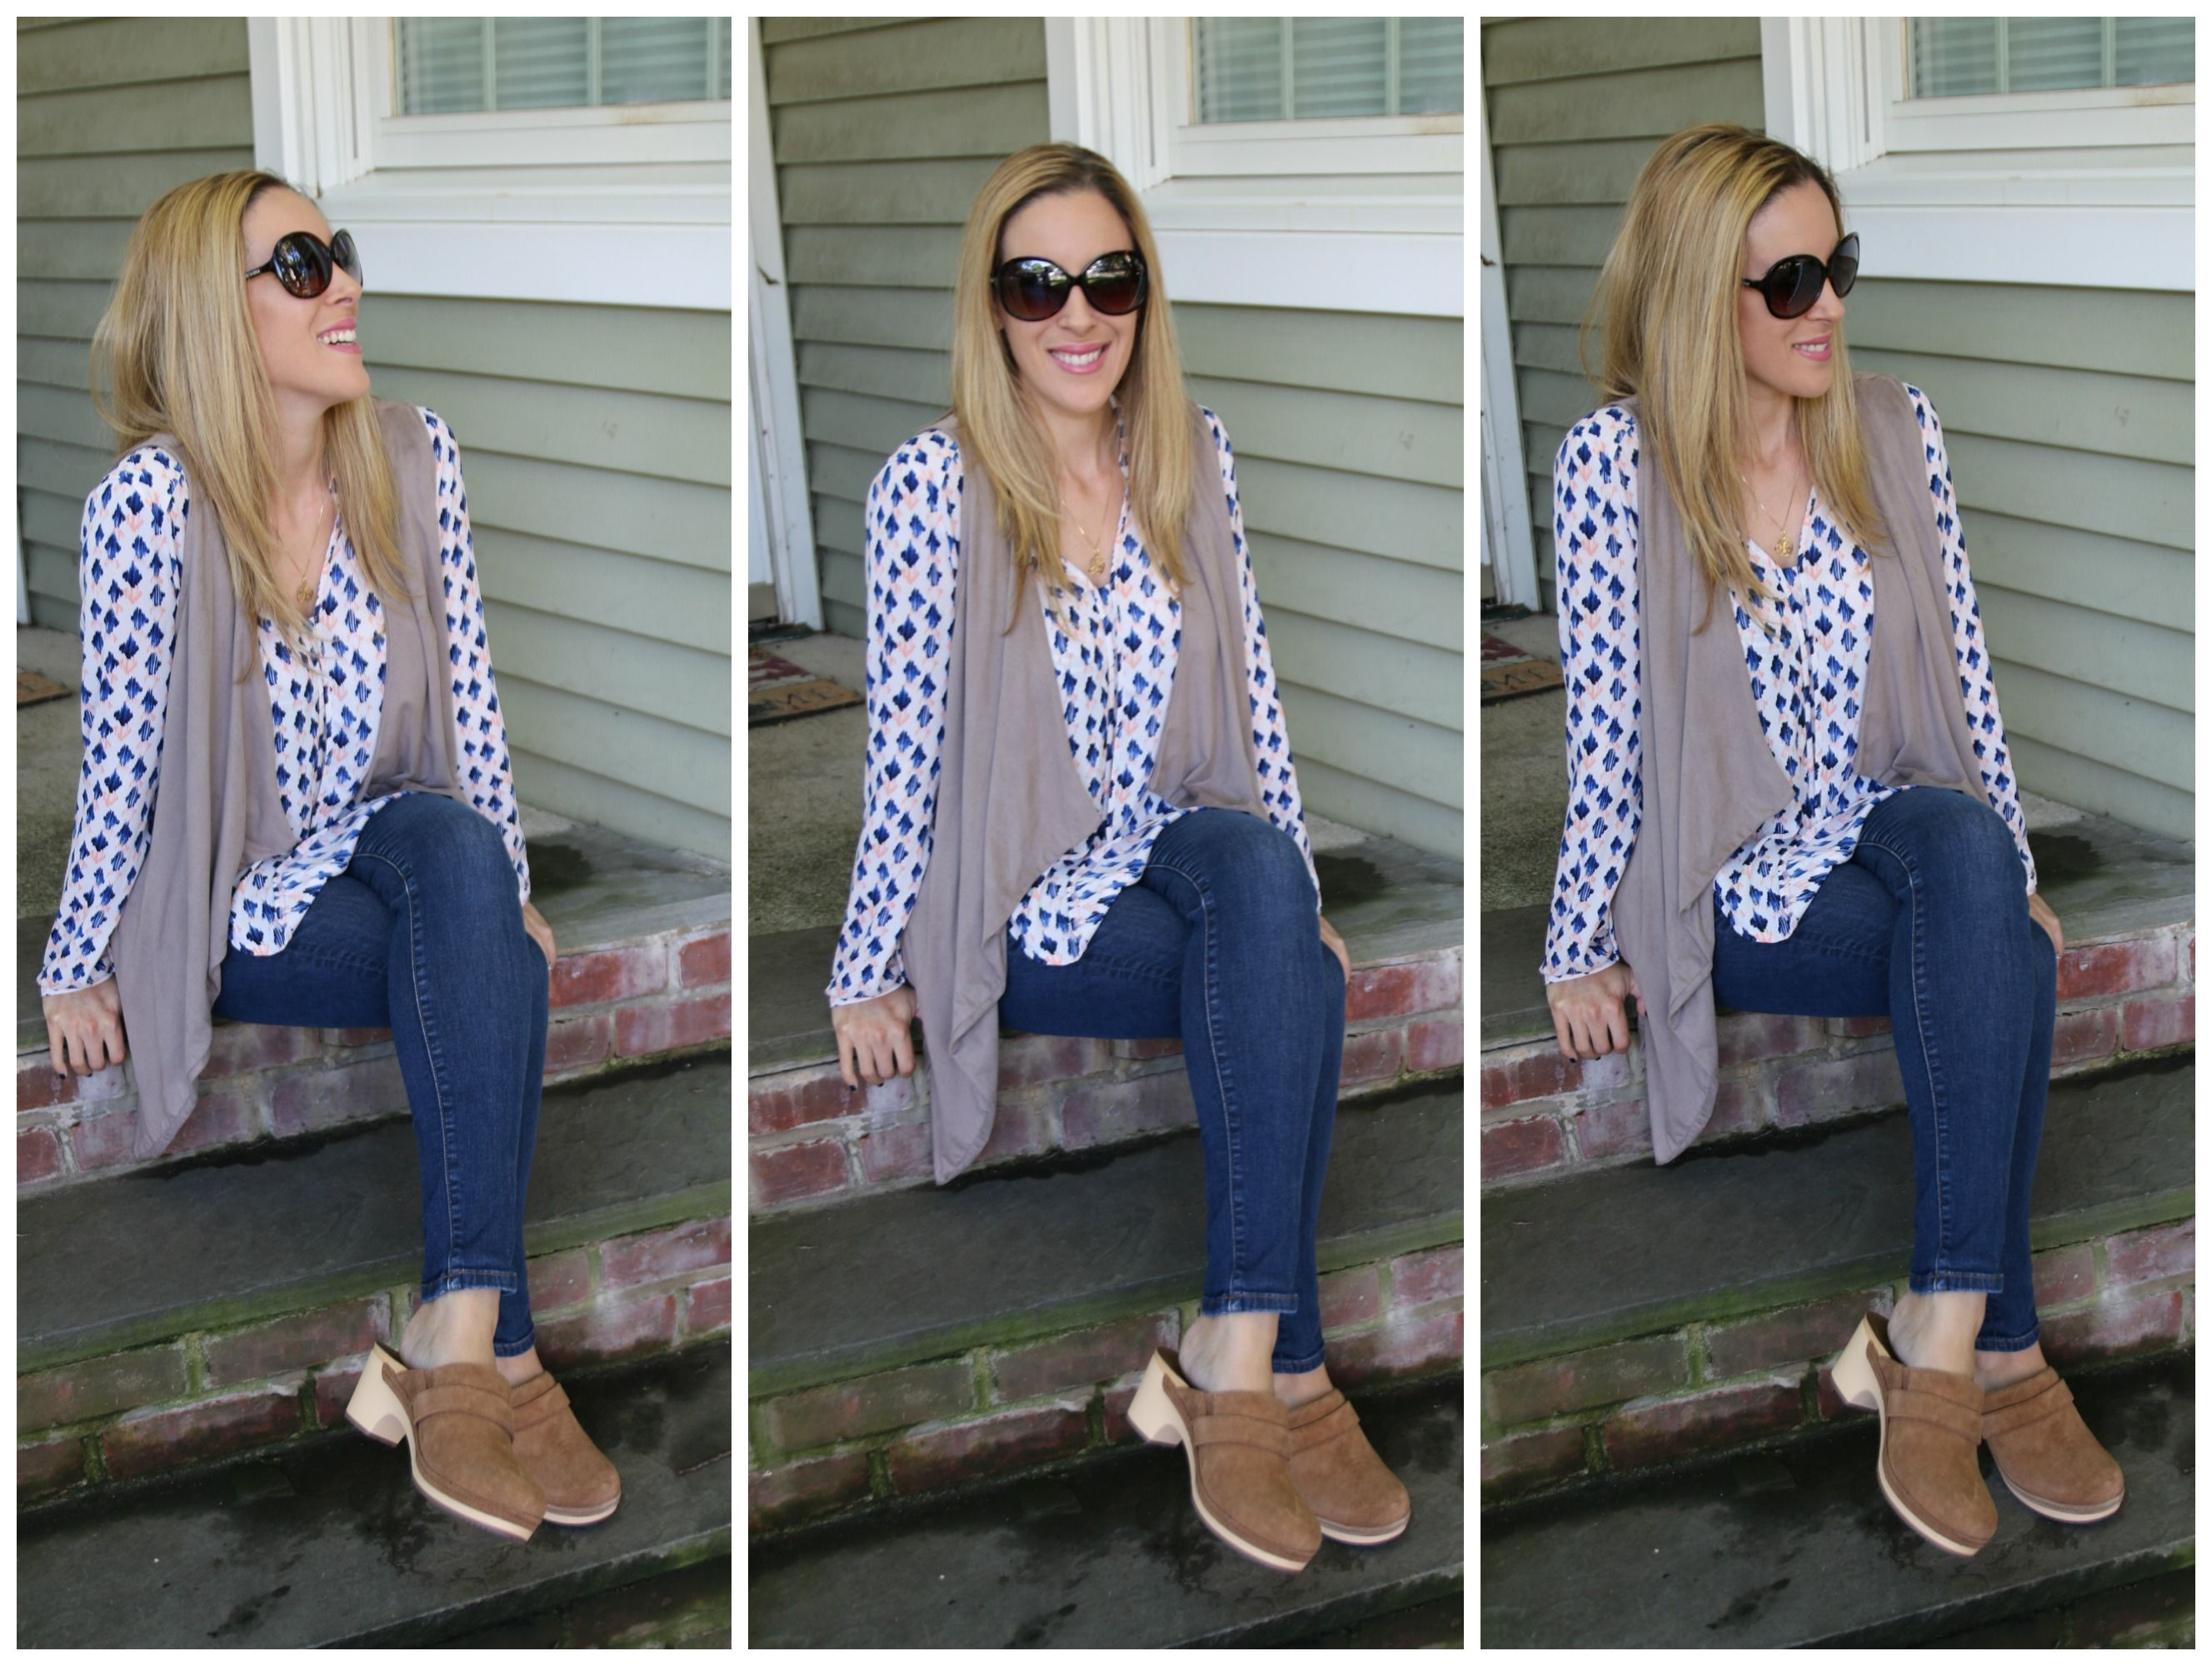 1e405dce084d5 Sarah Clogs From Crocs  Shoe Fashion Review Plus 20% Coupon Code ...